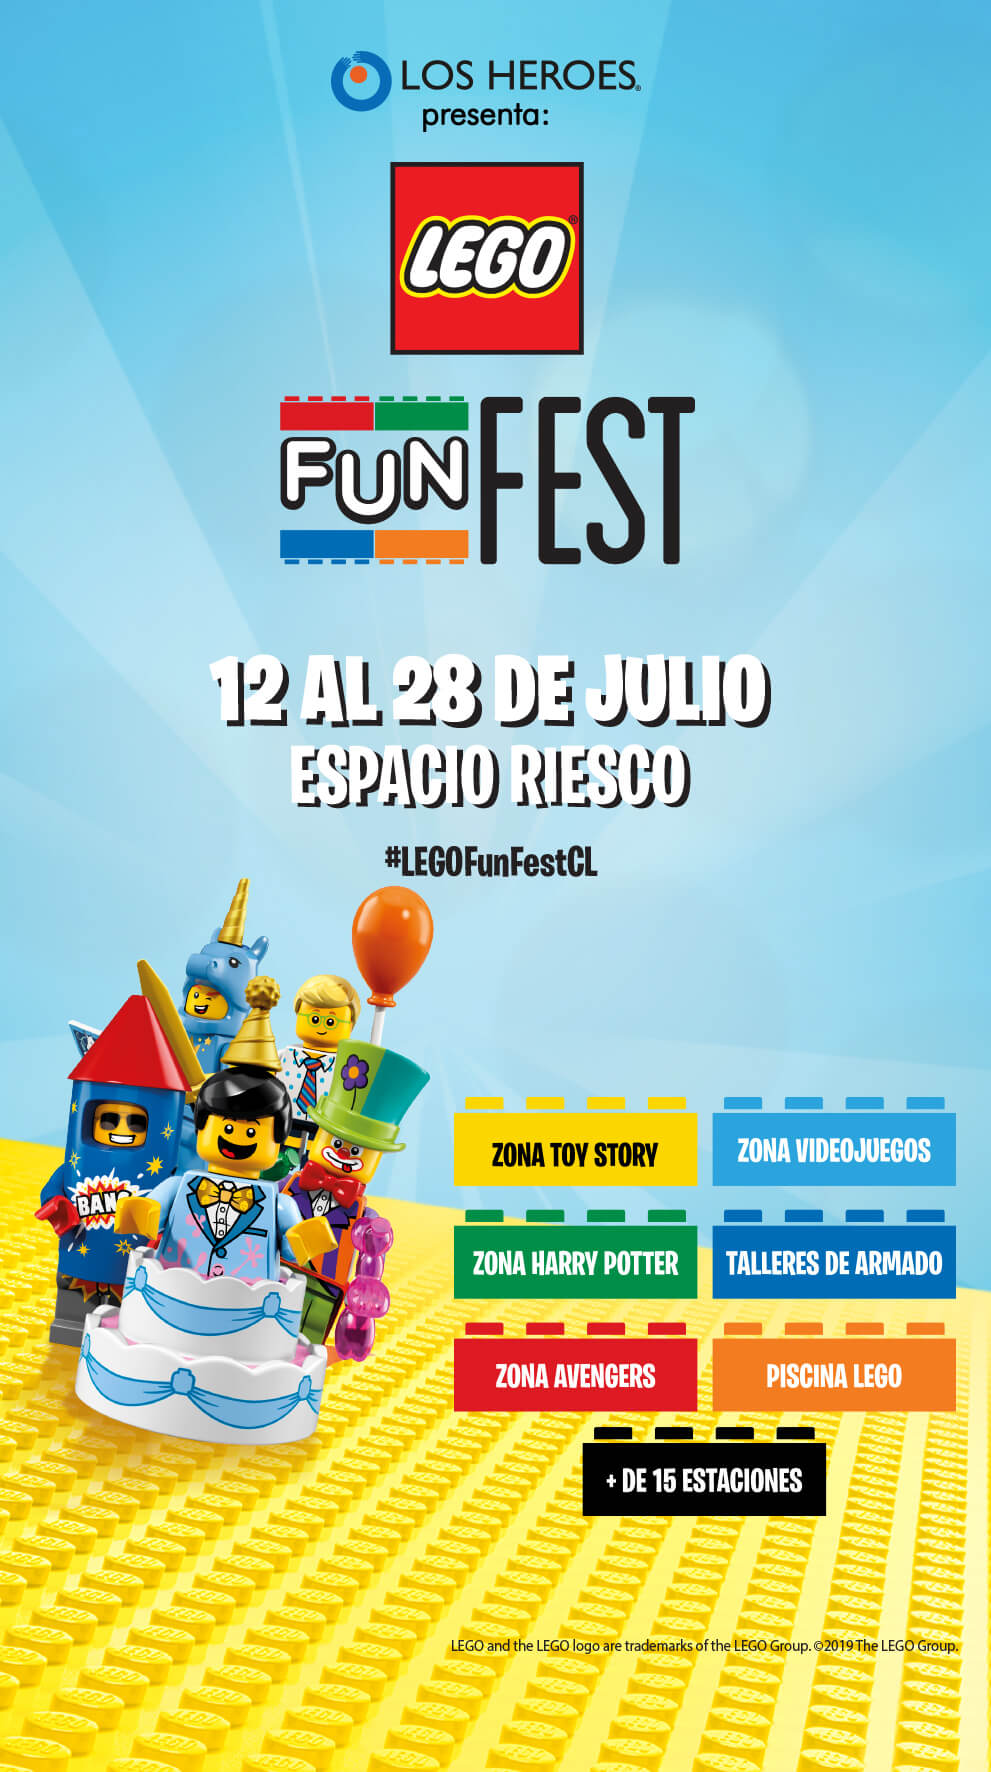 Lego Fun Fest 2019 en Chile